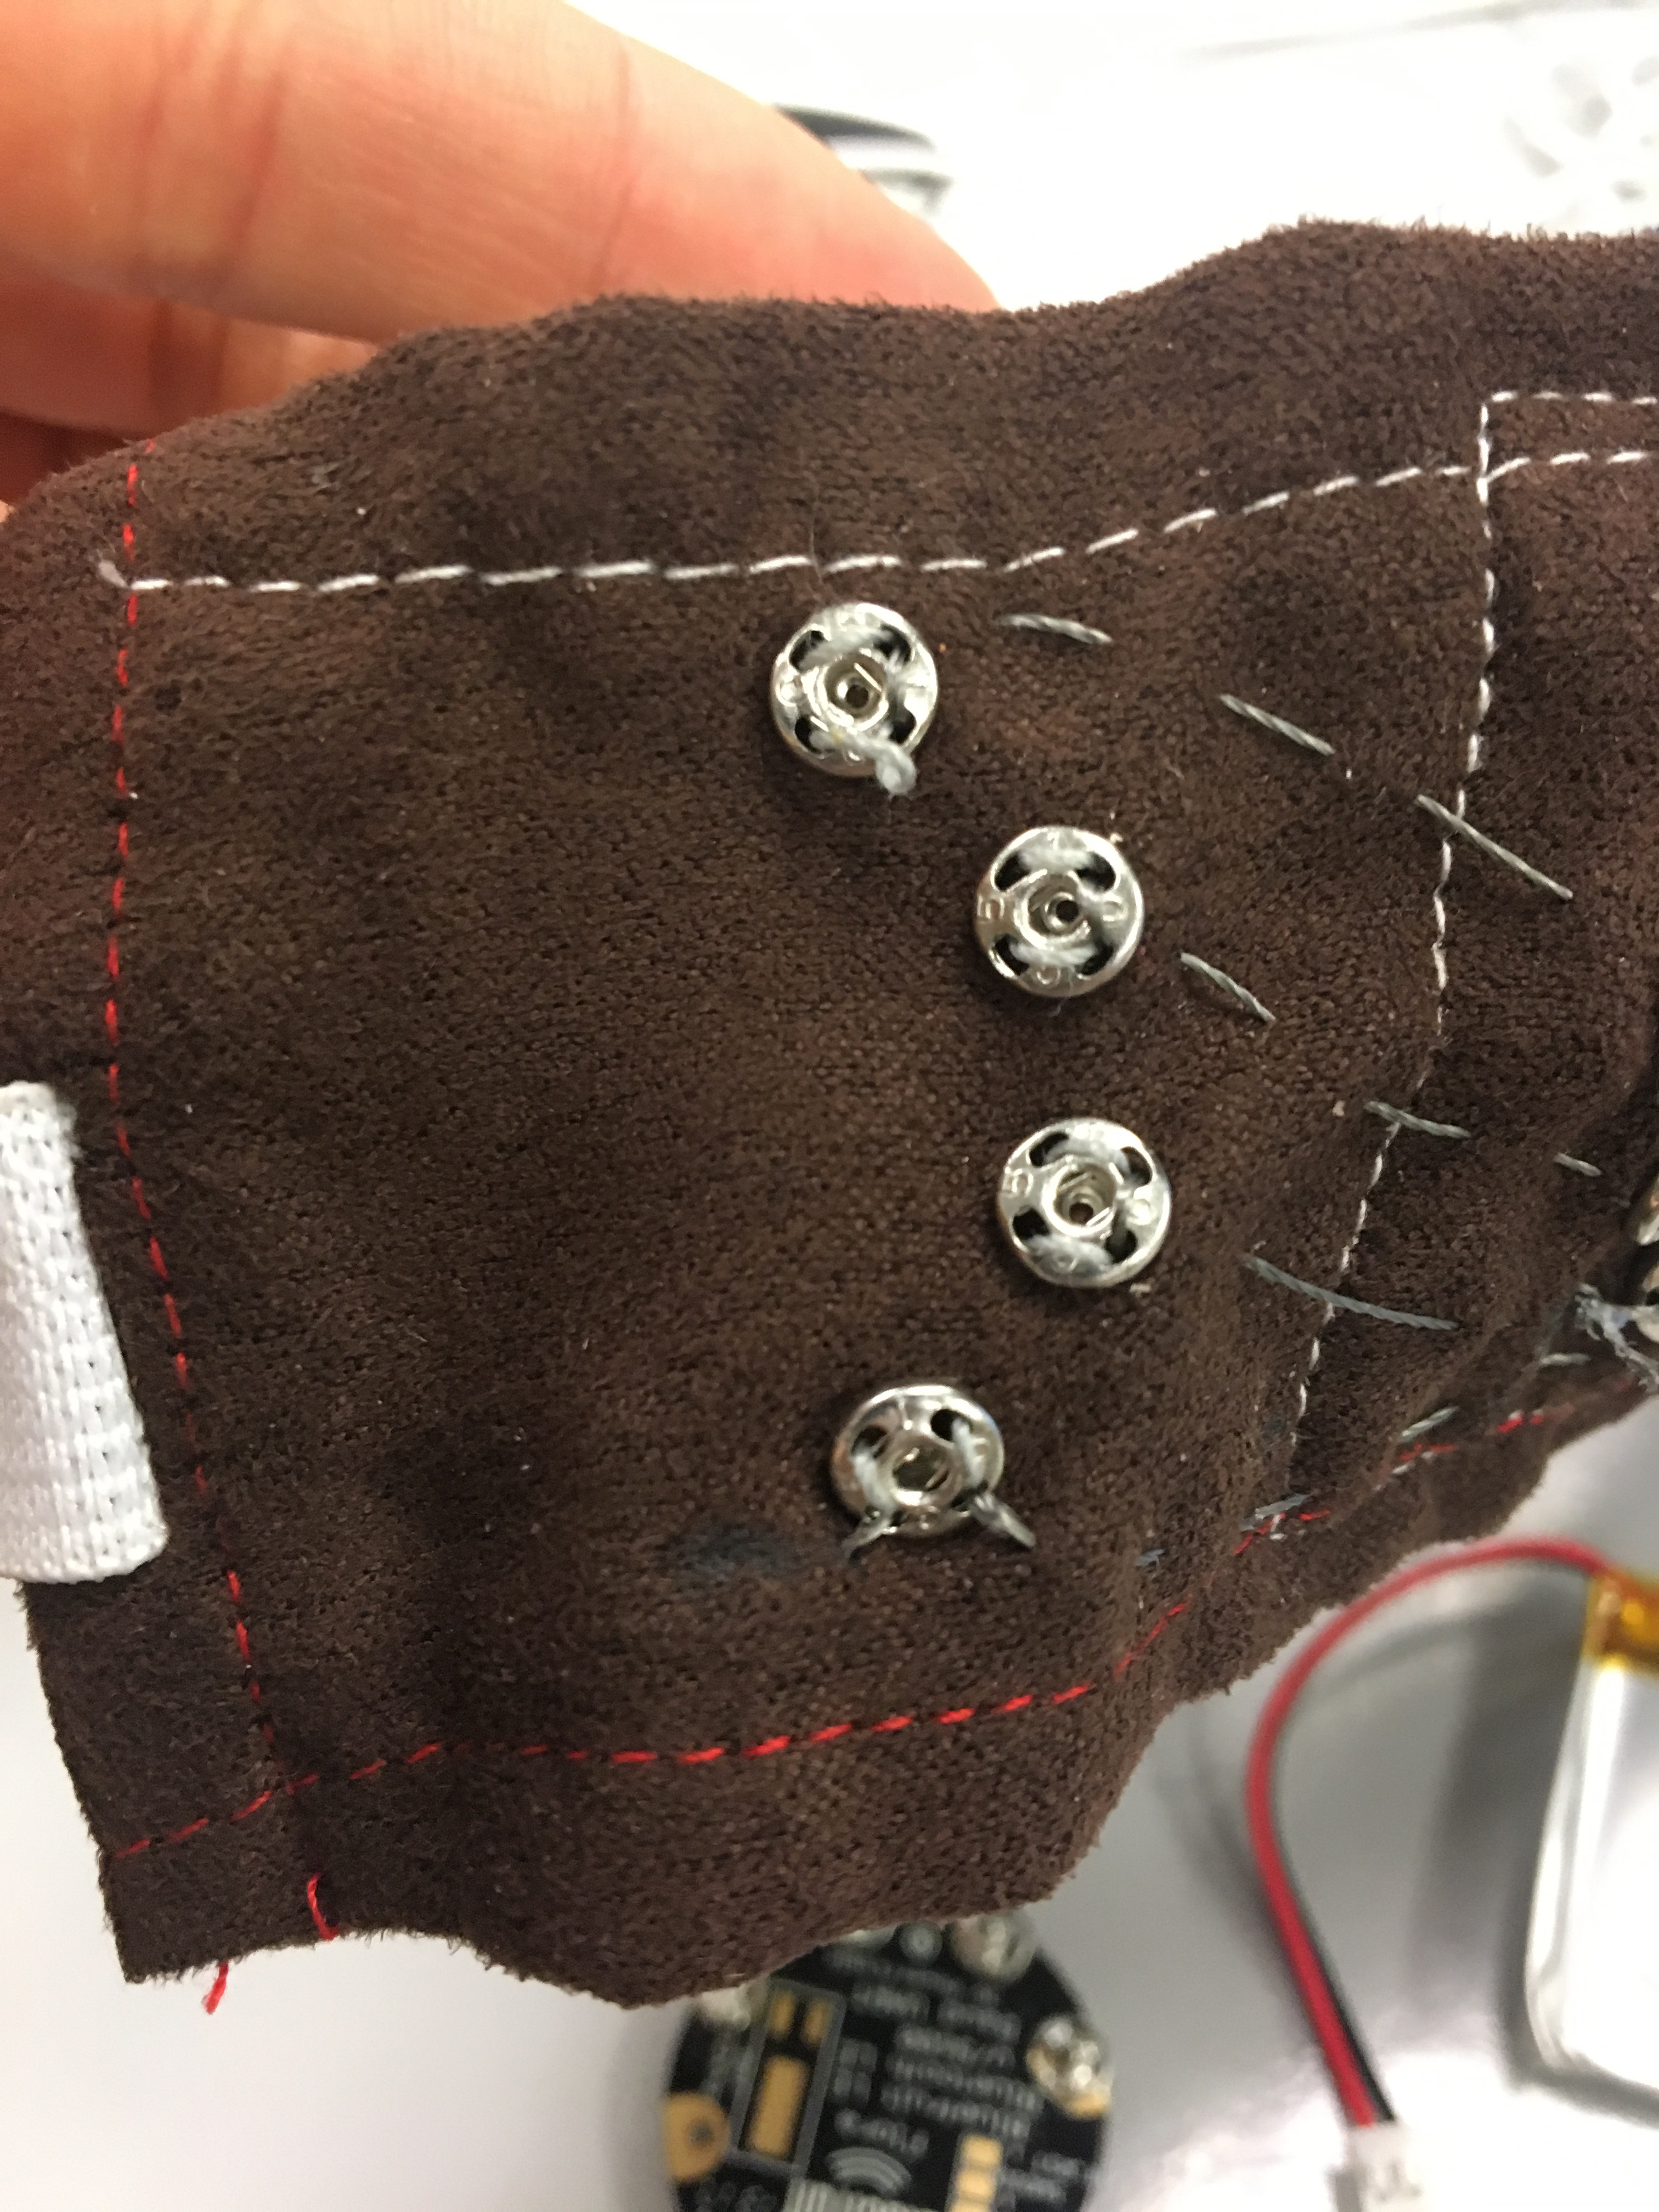 Picture of Sew Snaps Into Fabric for Bluetooth Module